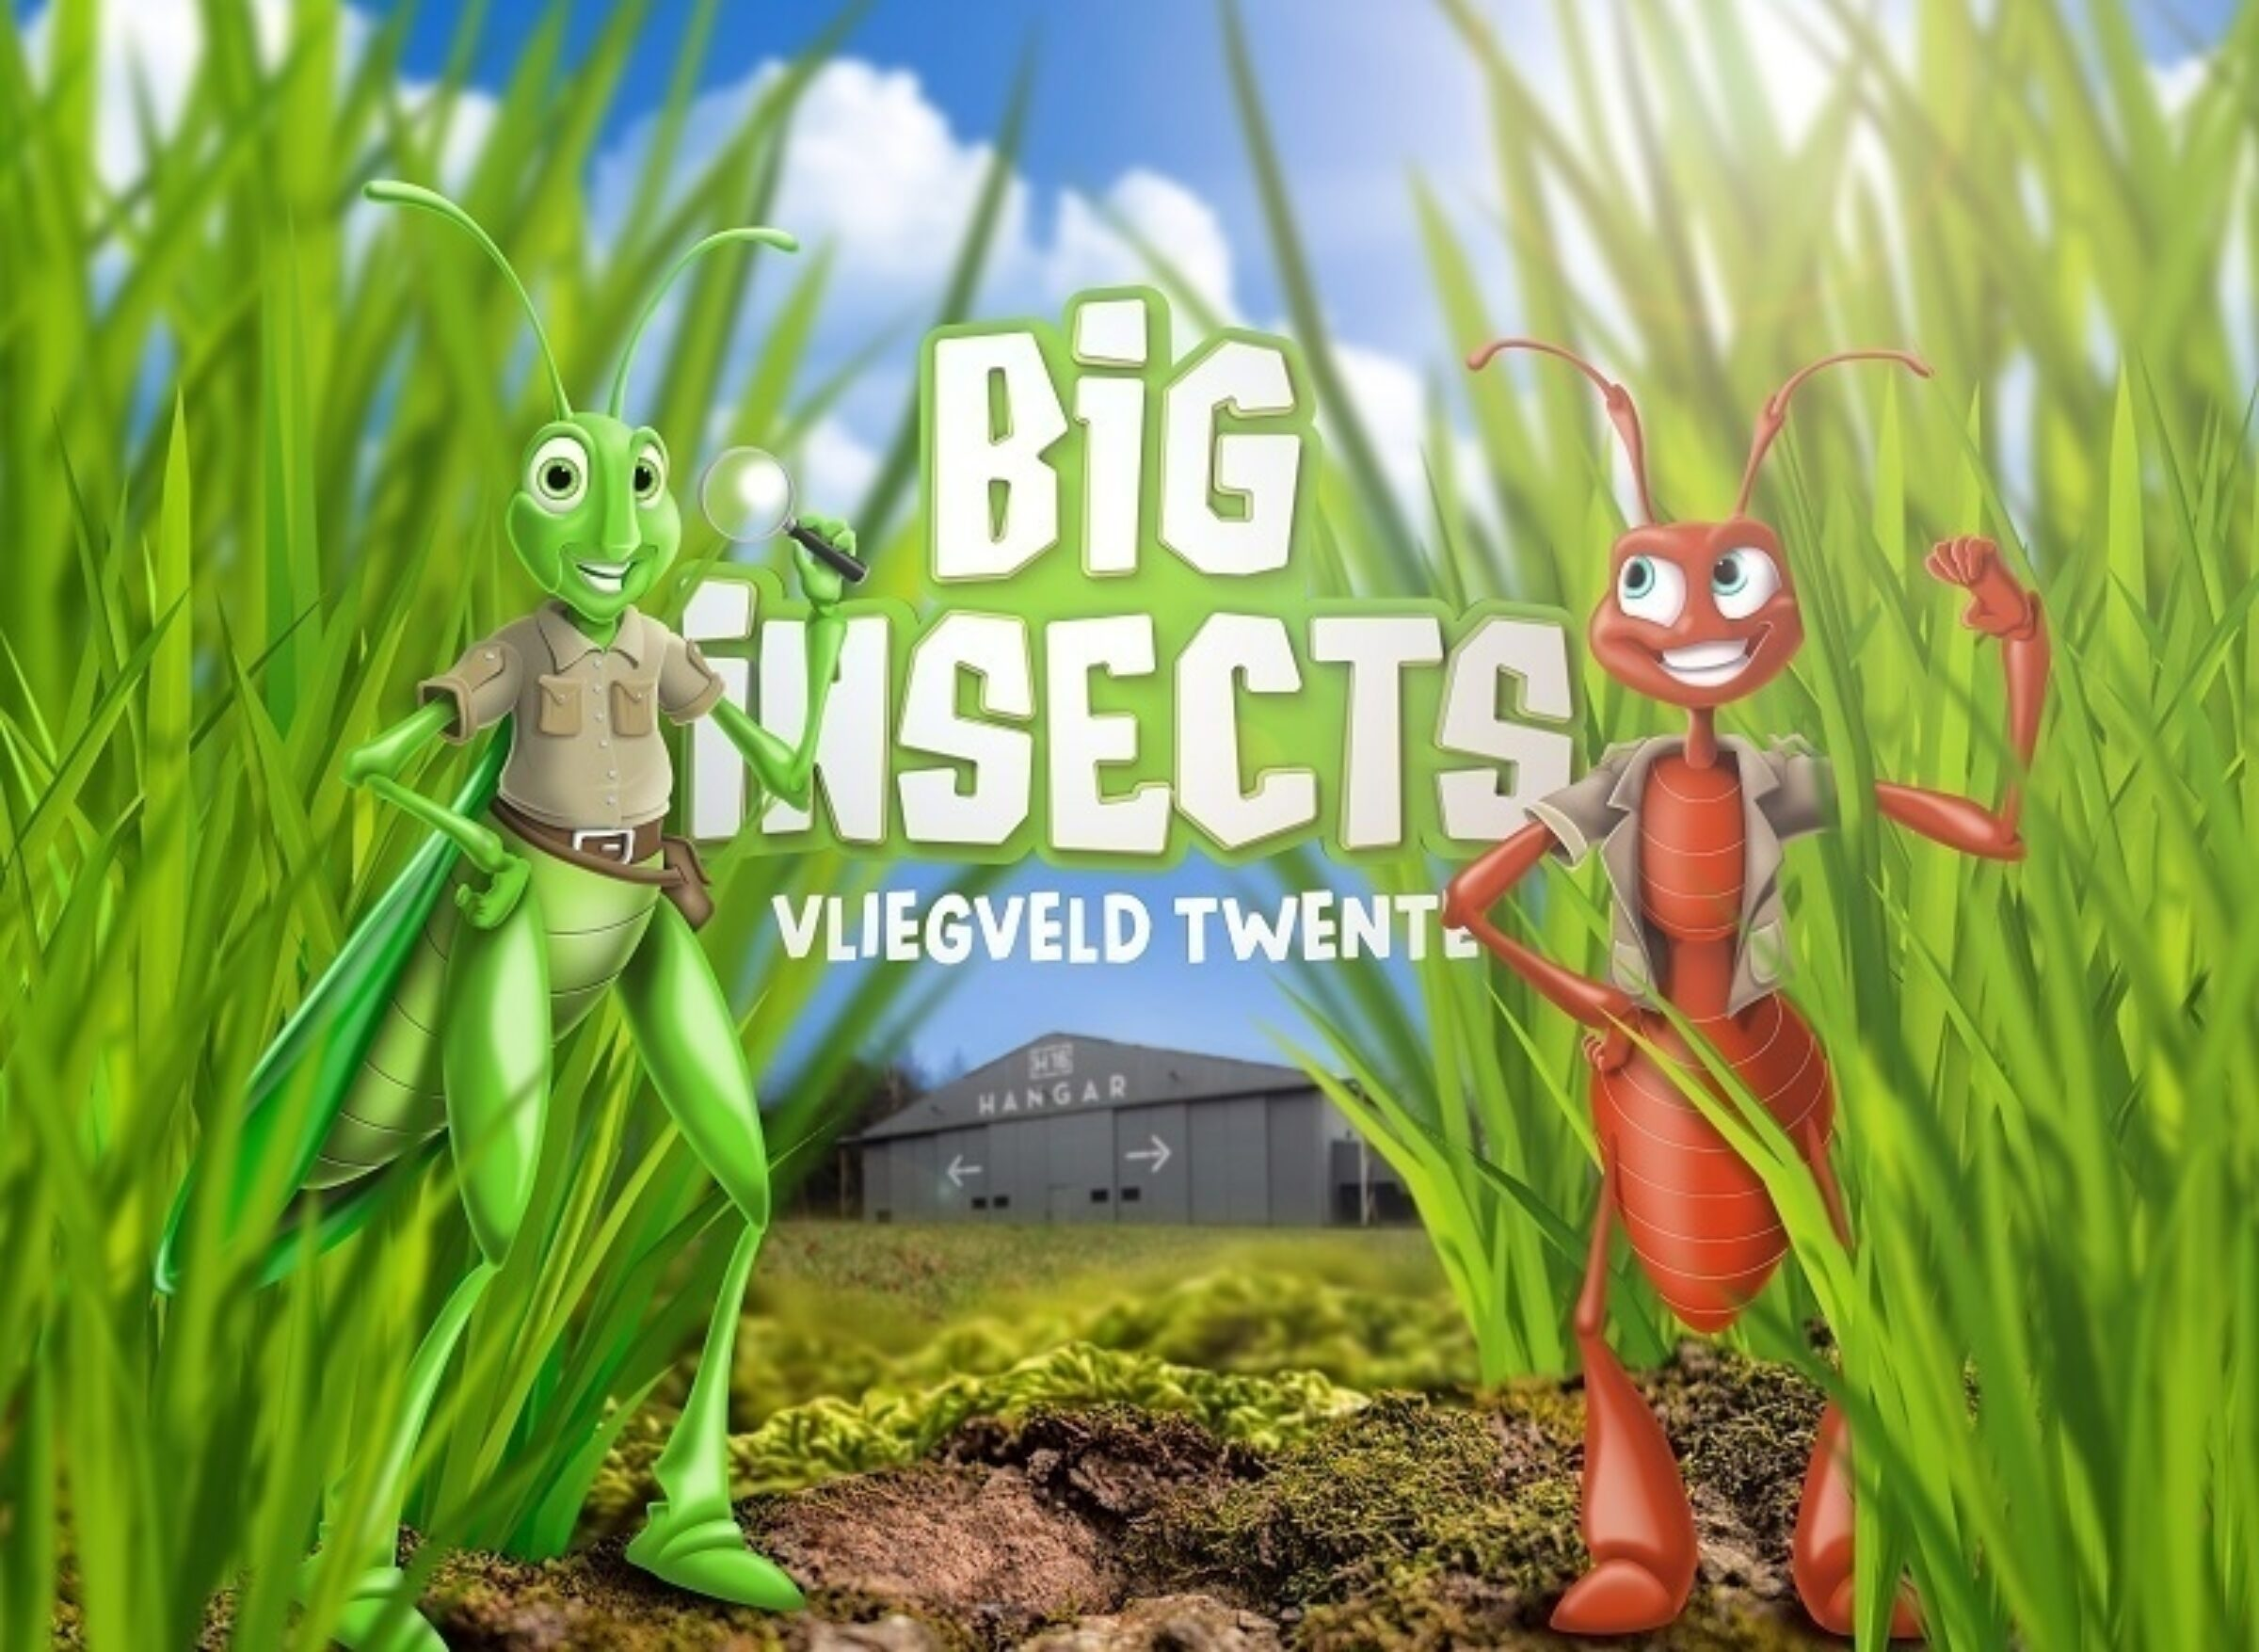 Big Insects Enschede 3874 1581155956 35i1y0ky4f